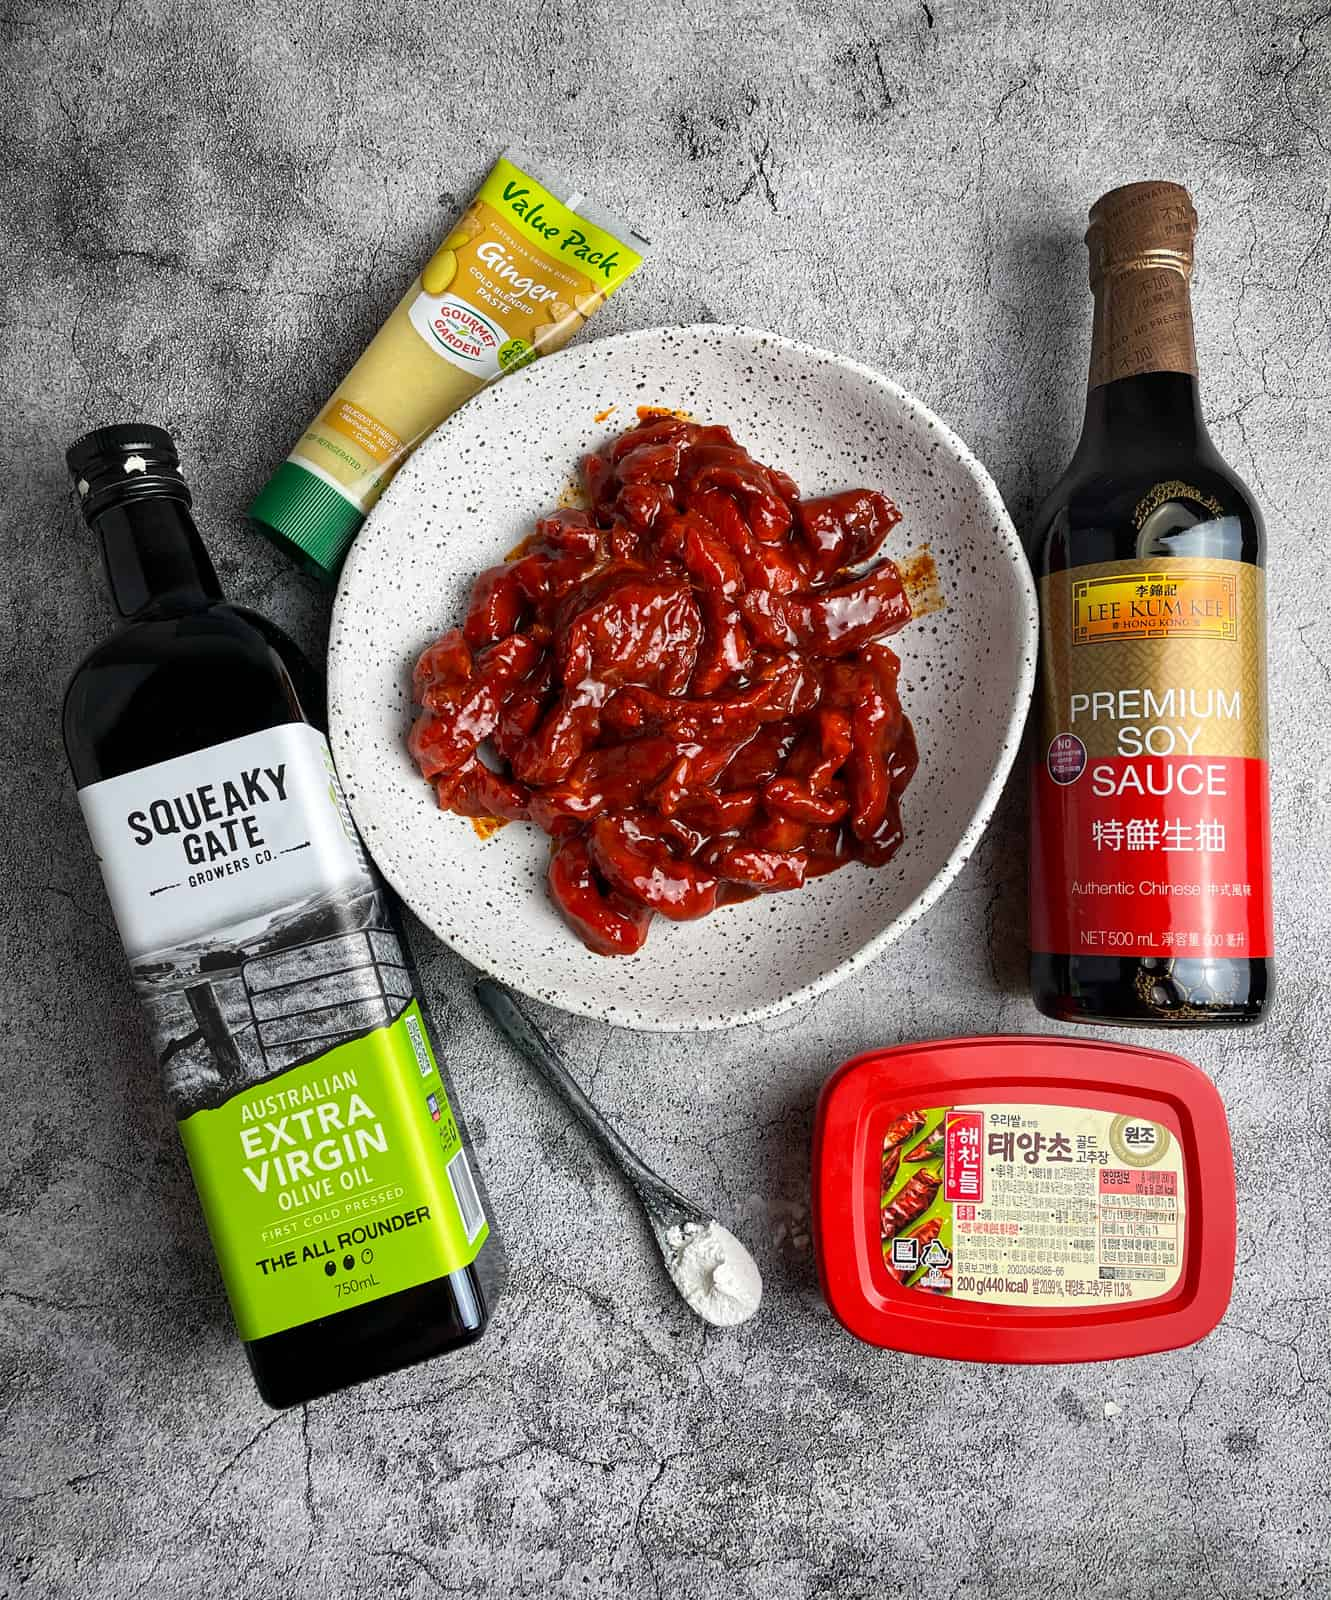 Stir-fry beef marinating and it's marinade ingredients